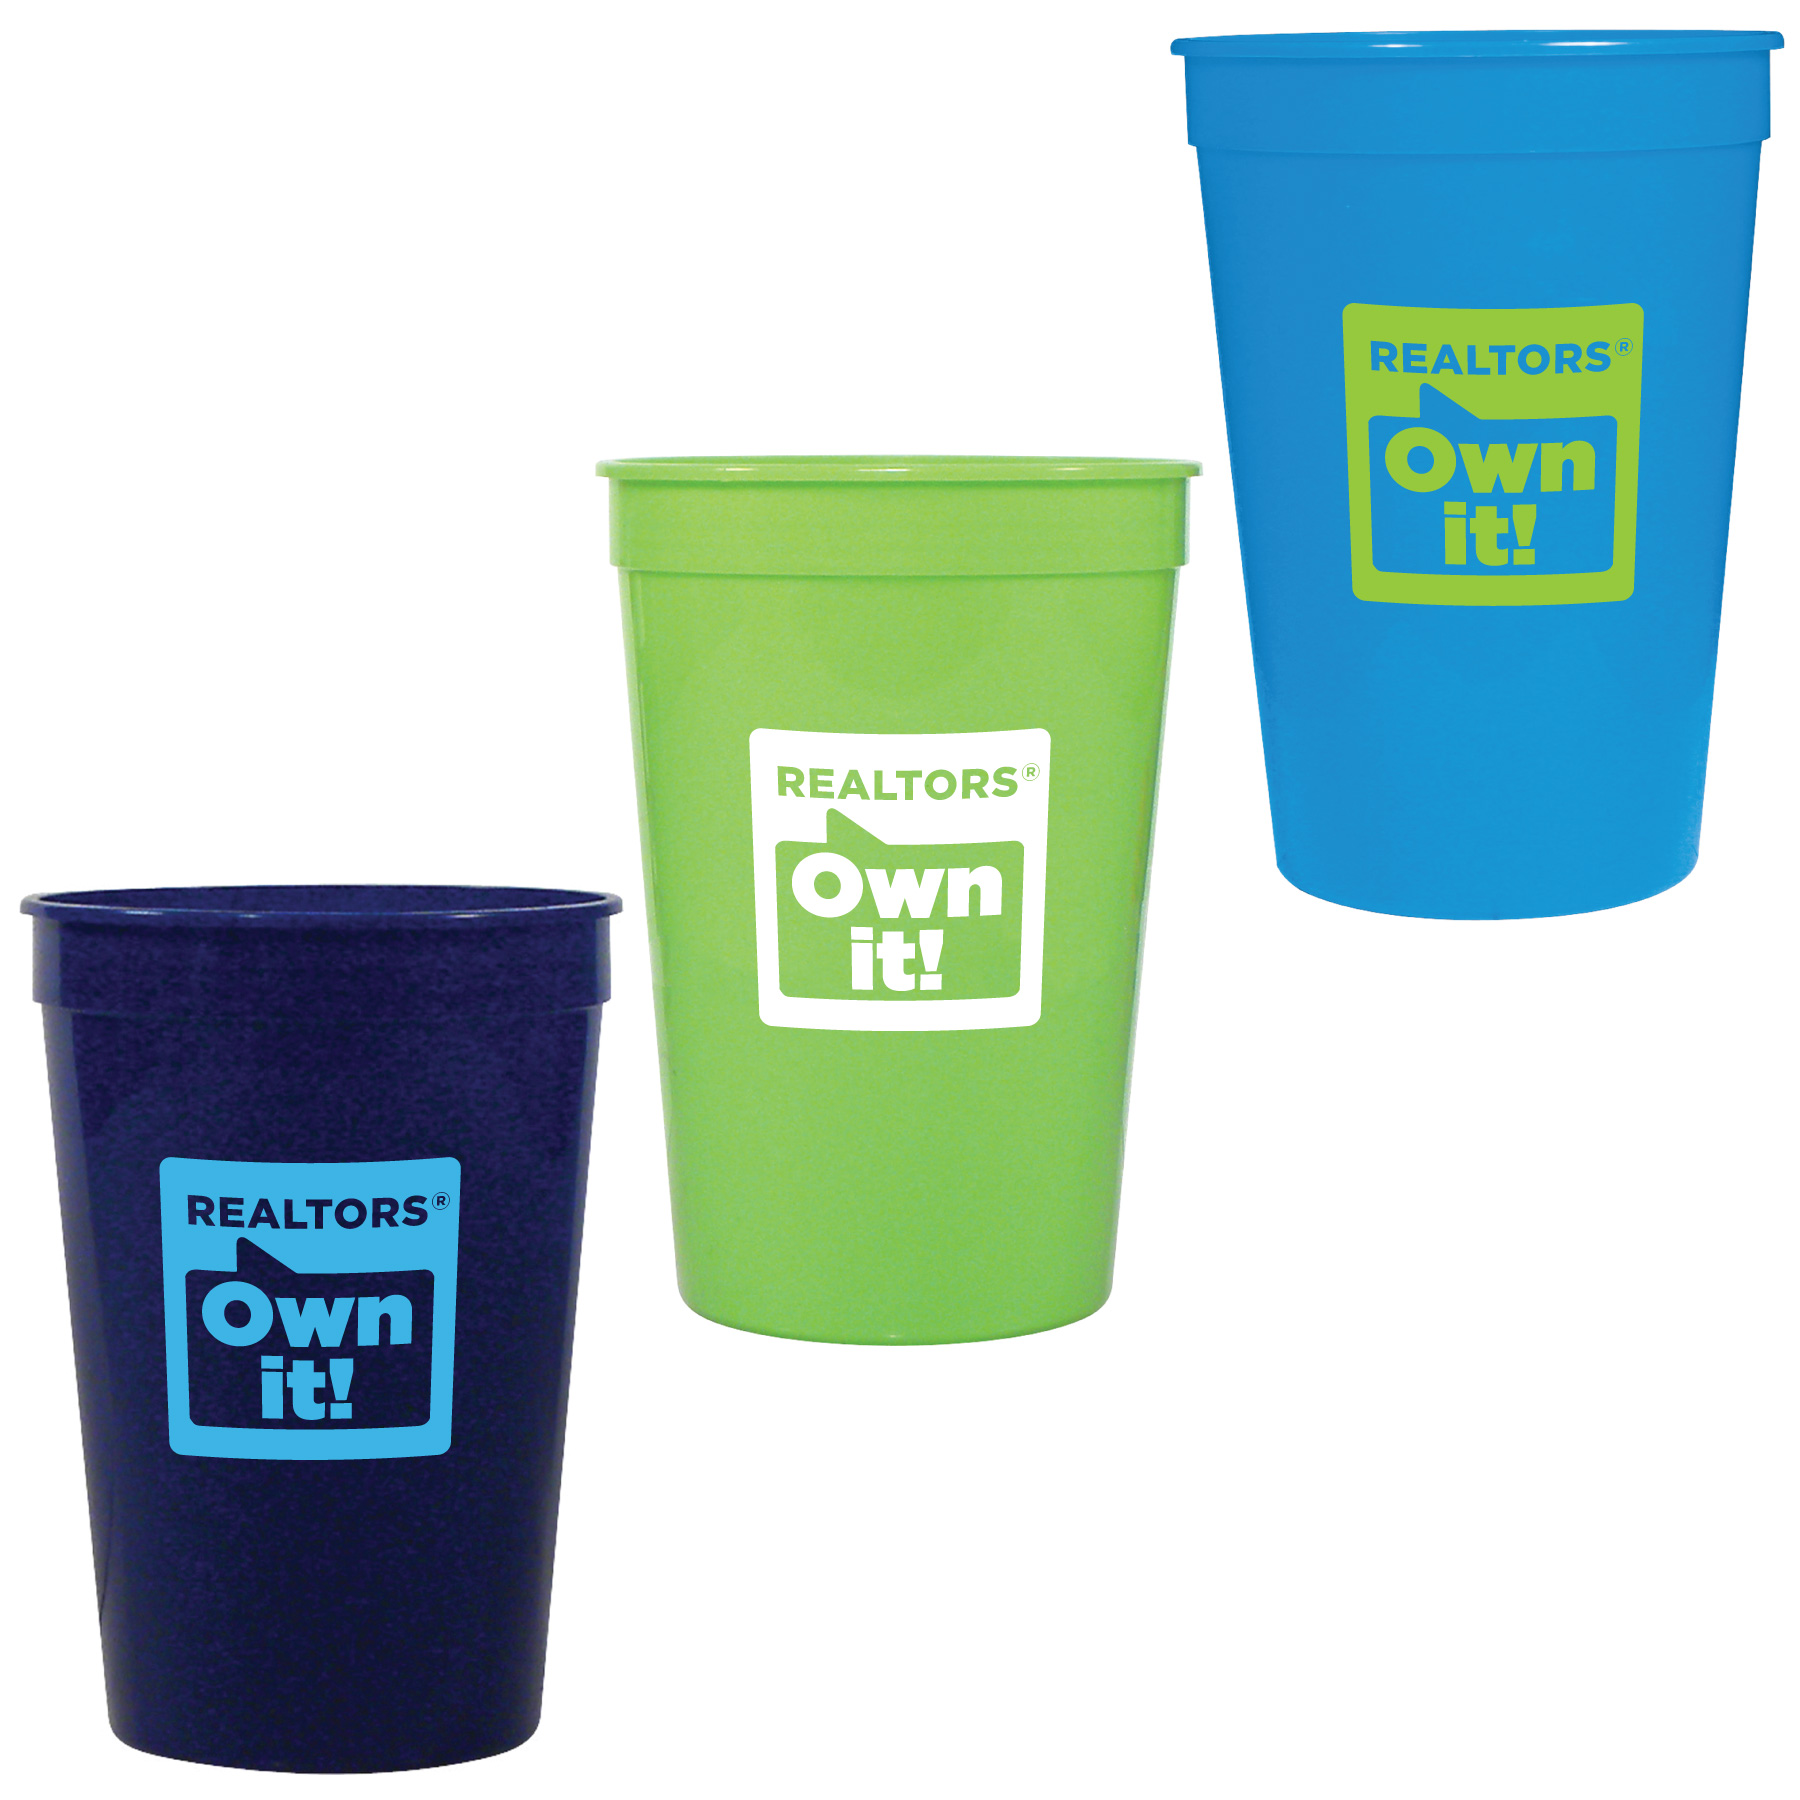 Taylor REALTORS® Own It! Stadium Cup (Special Order) Cups,Mugs,Tumblers,Drinks,Drinkwares,glasses,glass